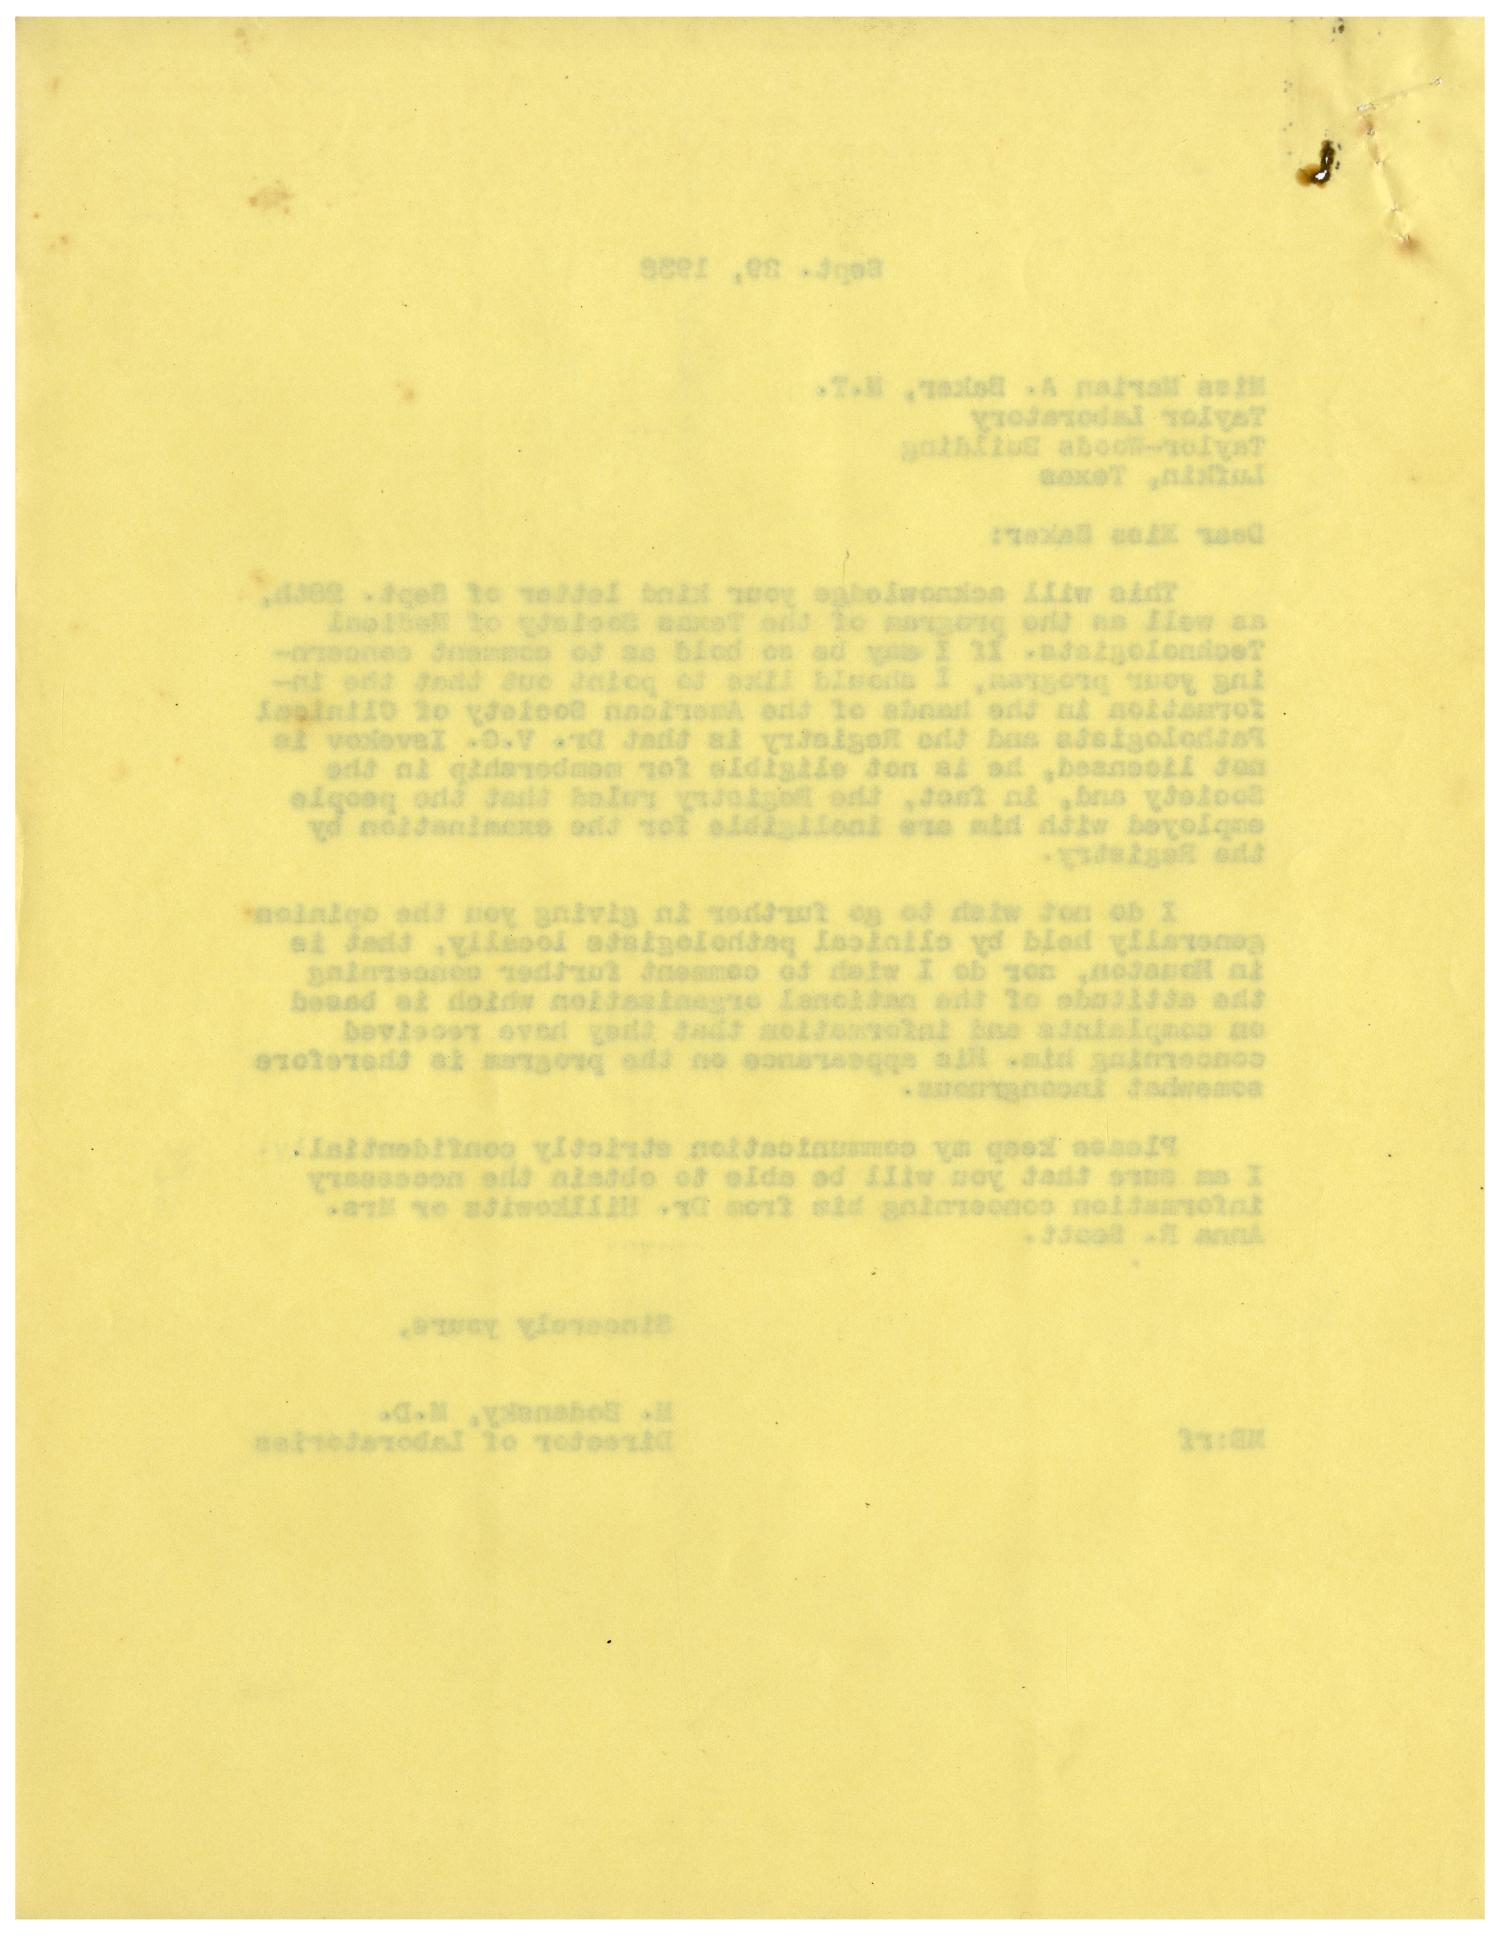 [Correspondence between Marian A. Baker and Dr. Meyer Bodansky - September 1938]                                                                                                      [Sequence #]: 2 of 4